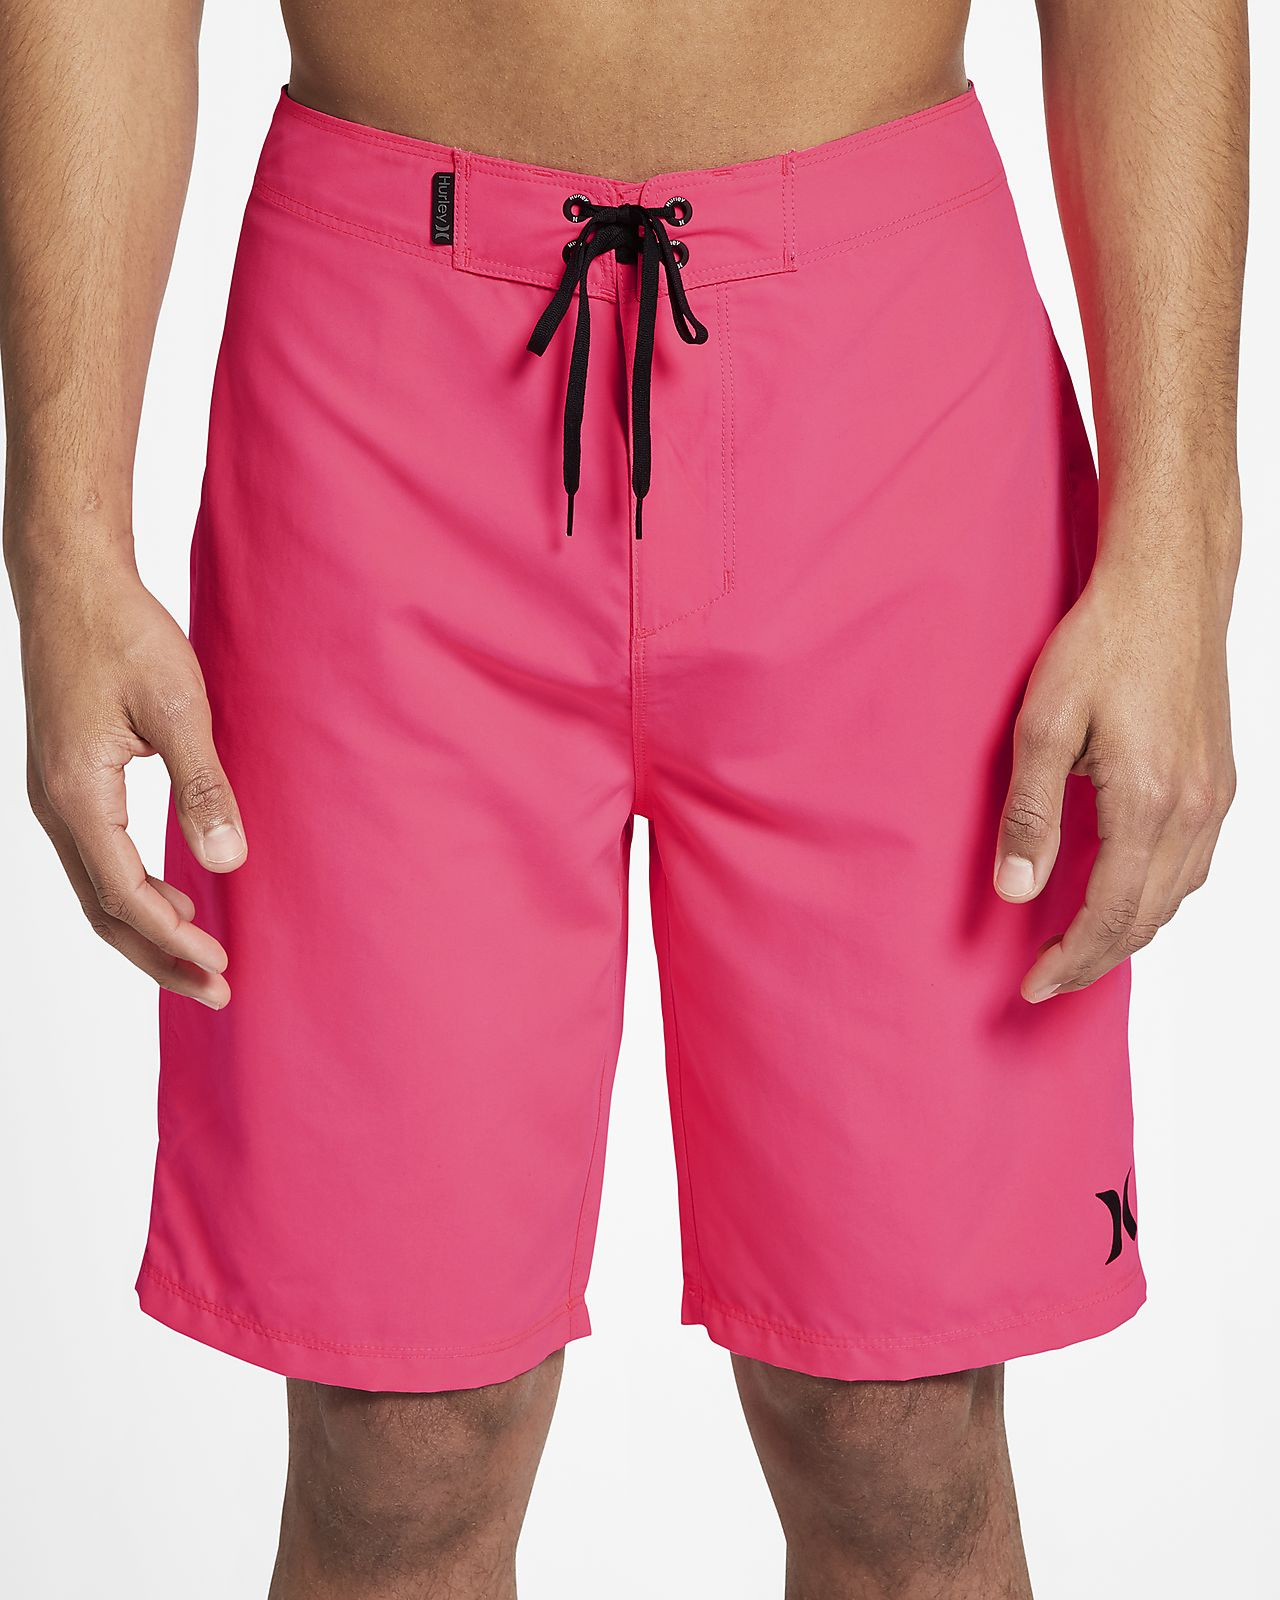 Hurley One And Only Men's 53cm Boardshorts